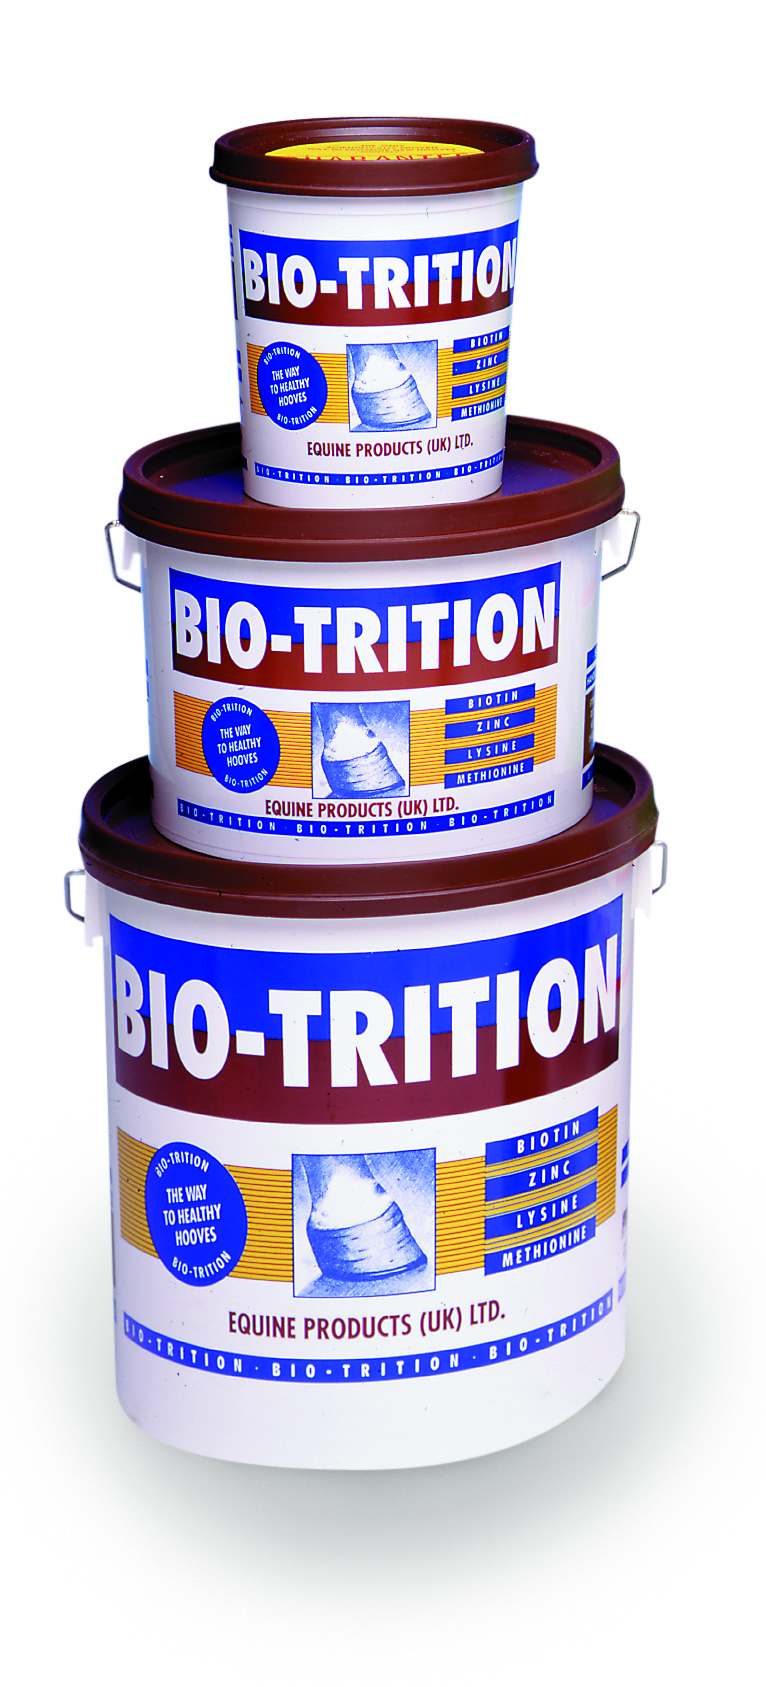 Equine Products UK Bio-Trition Hoof Growth For Horses